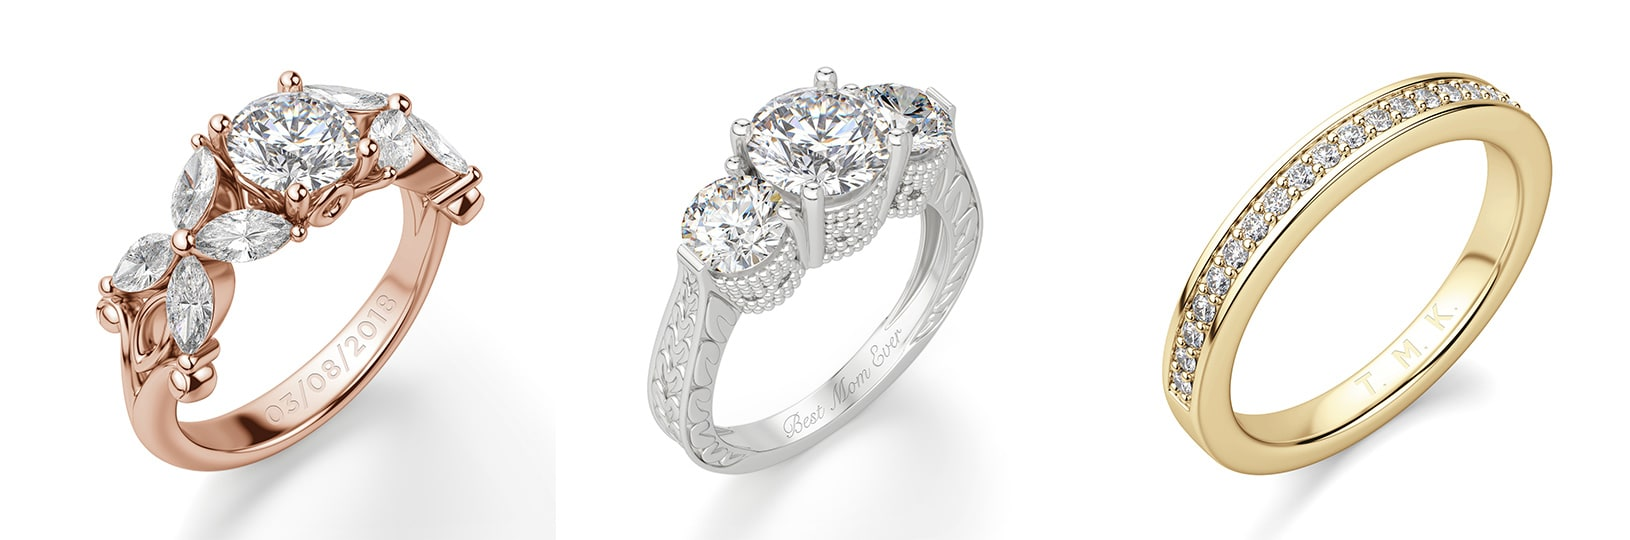 Three engagement rings side-by-side